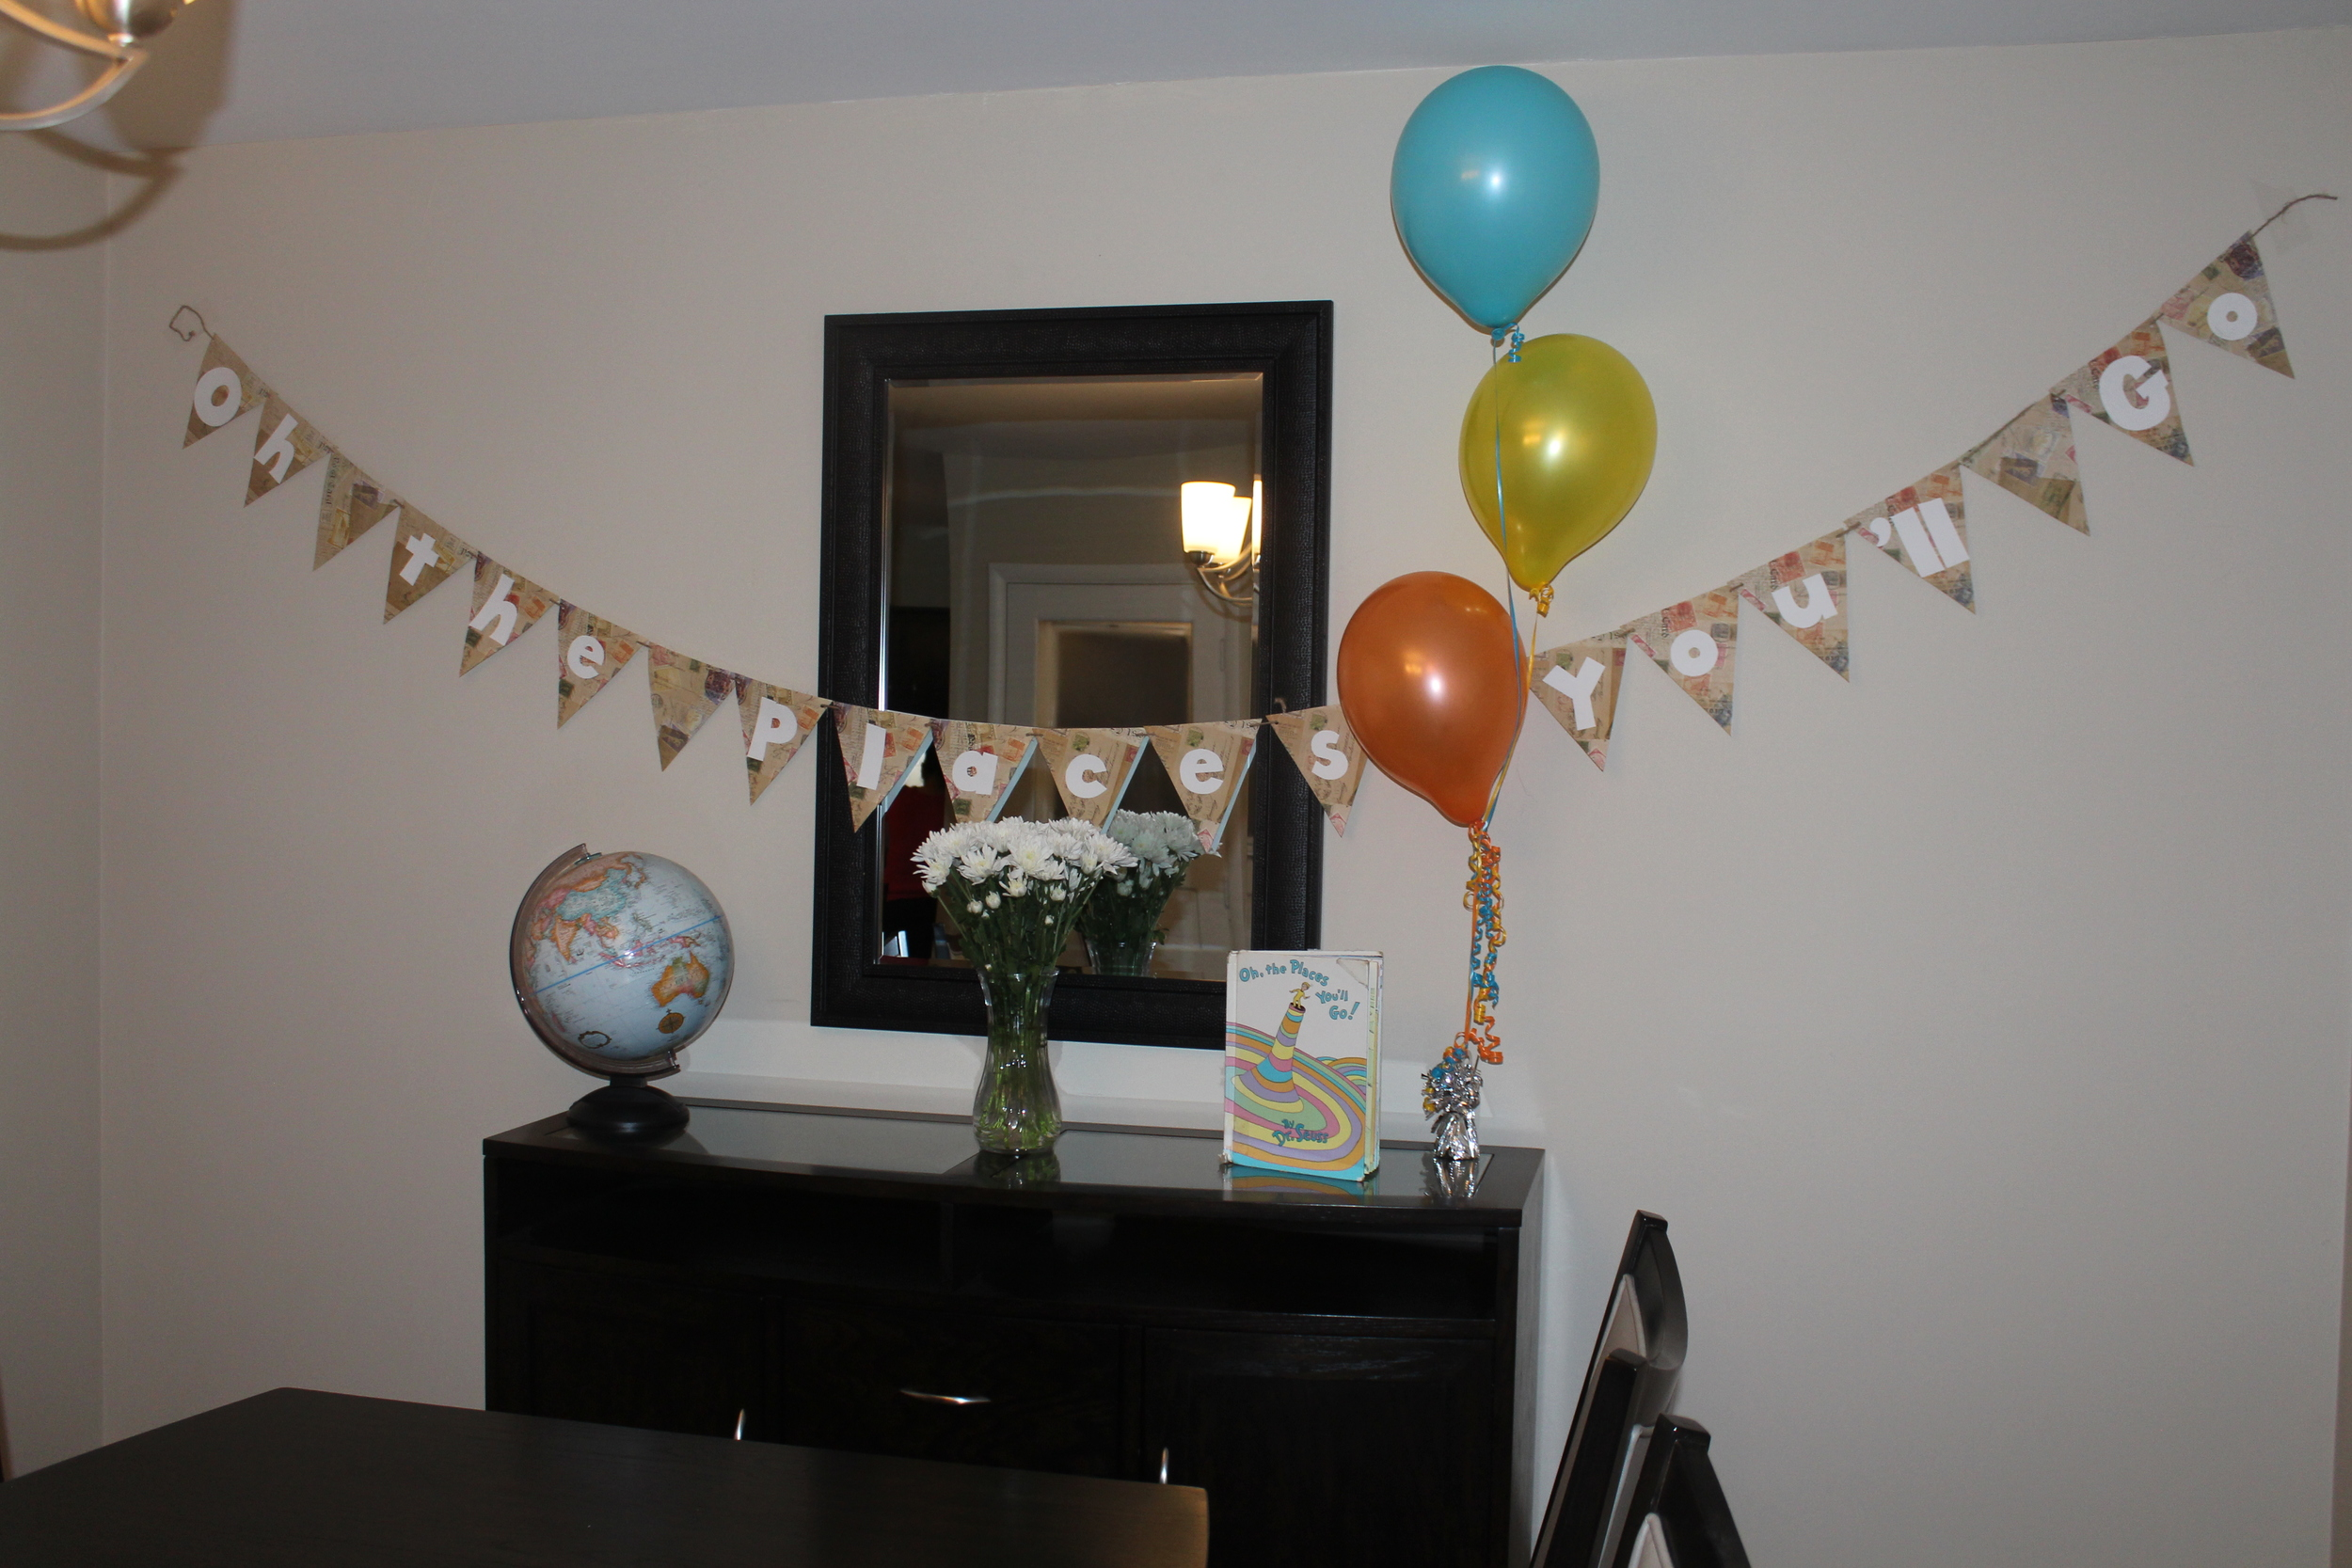 Really loved the decorations my sister used. She knows me well!